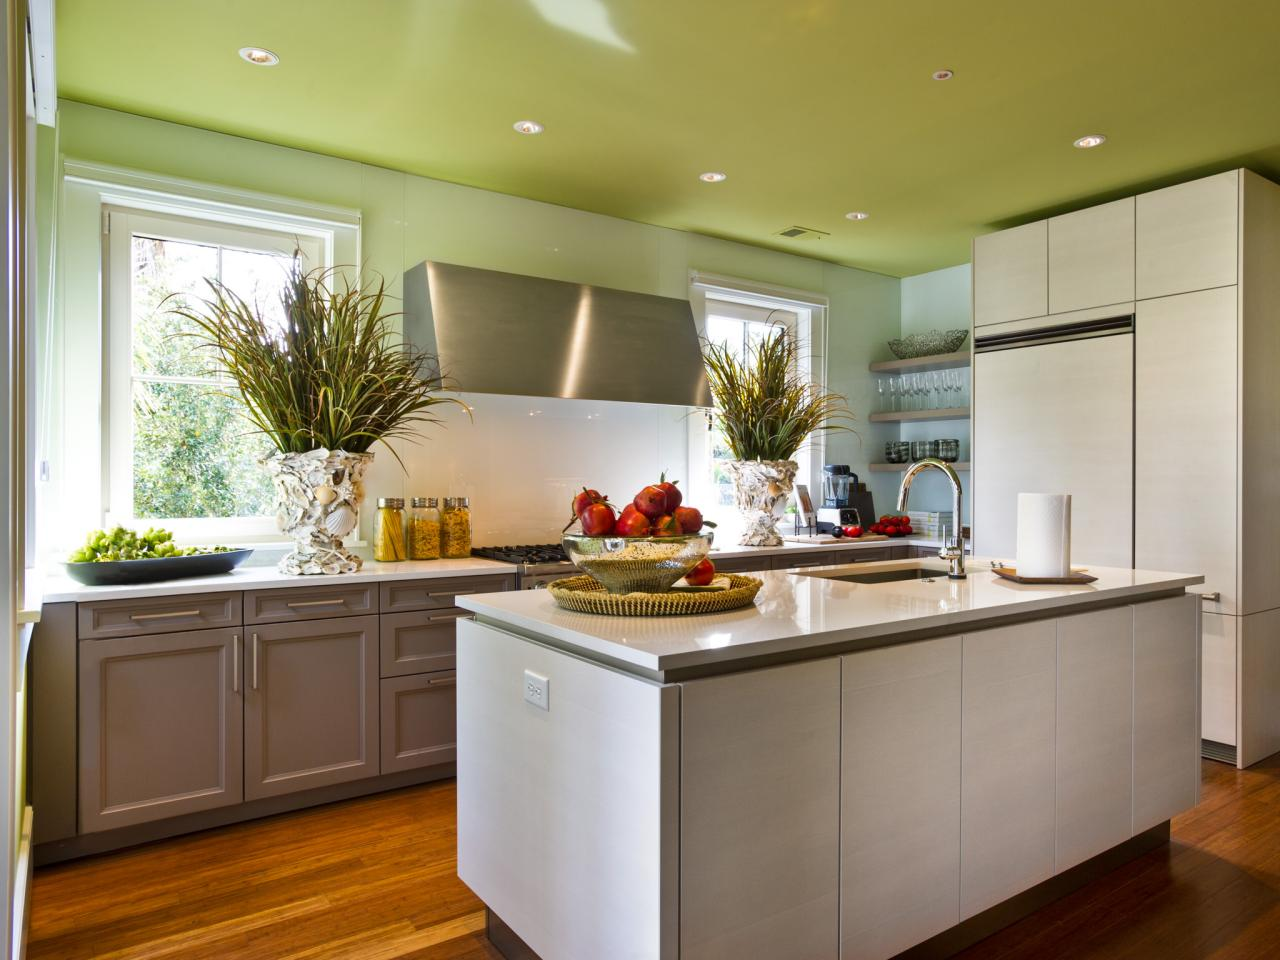 Coastal kitchen design pictures ideas tips from hgtv for Kitchens by design